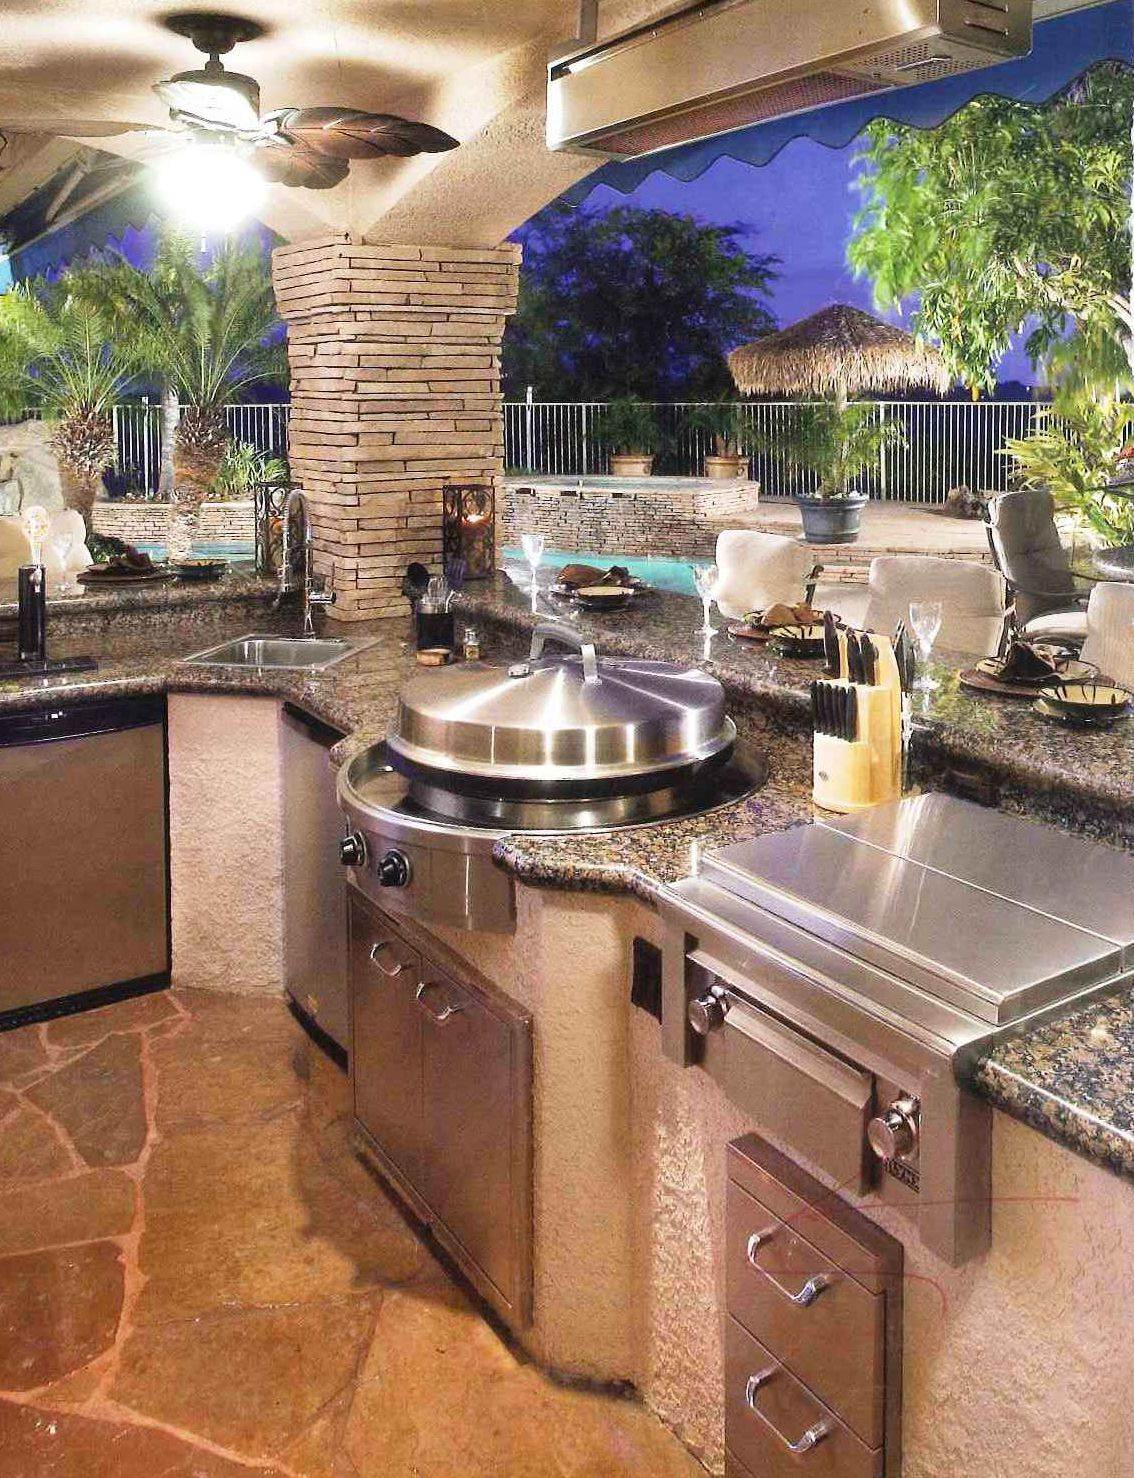 Circular Cooktop In Outdoor Kitchen Liances Backyard View Luxury Real Estate Listings At Www Seattleluxurylifestyle More